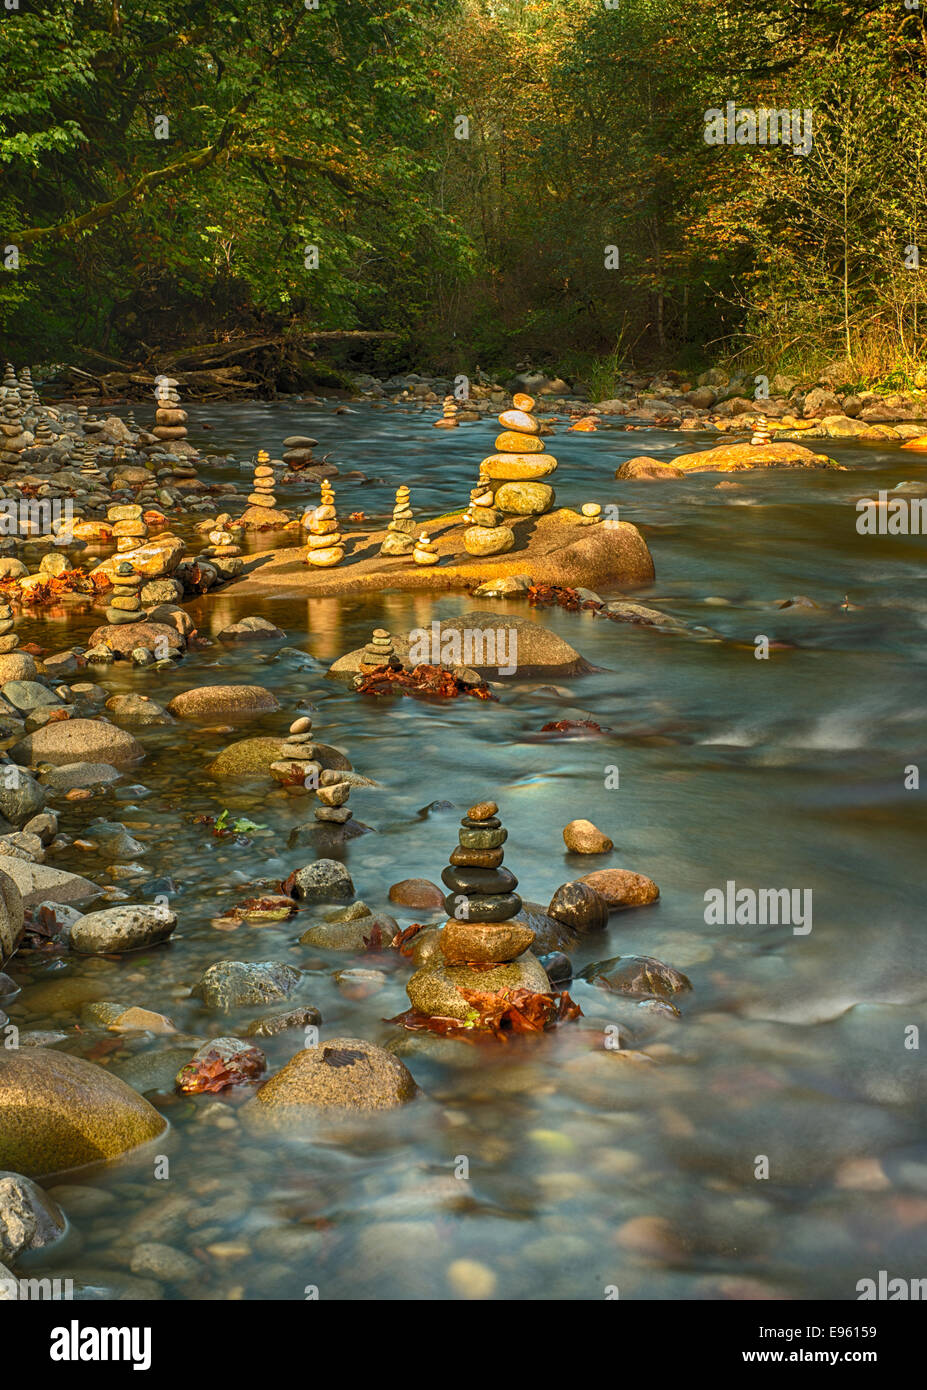 Stacked rock cairns in tranquil river with golden light - Stock Image